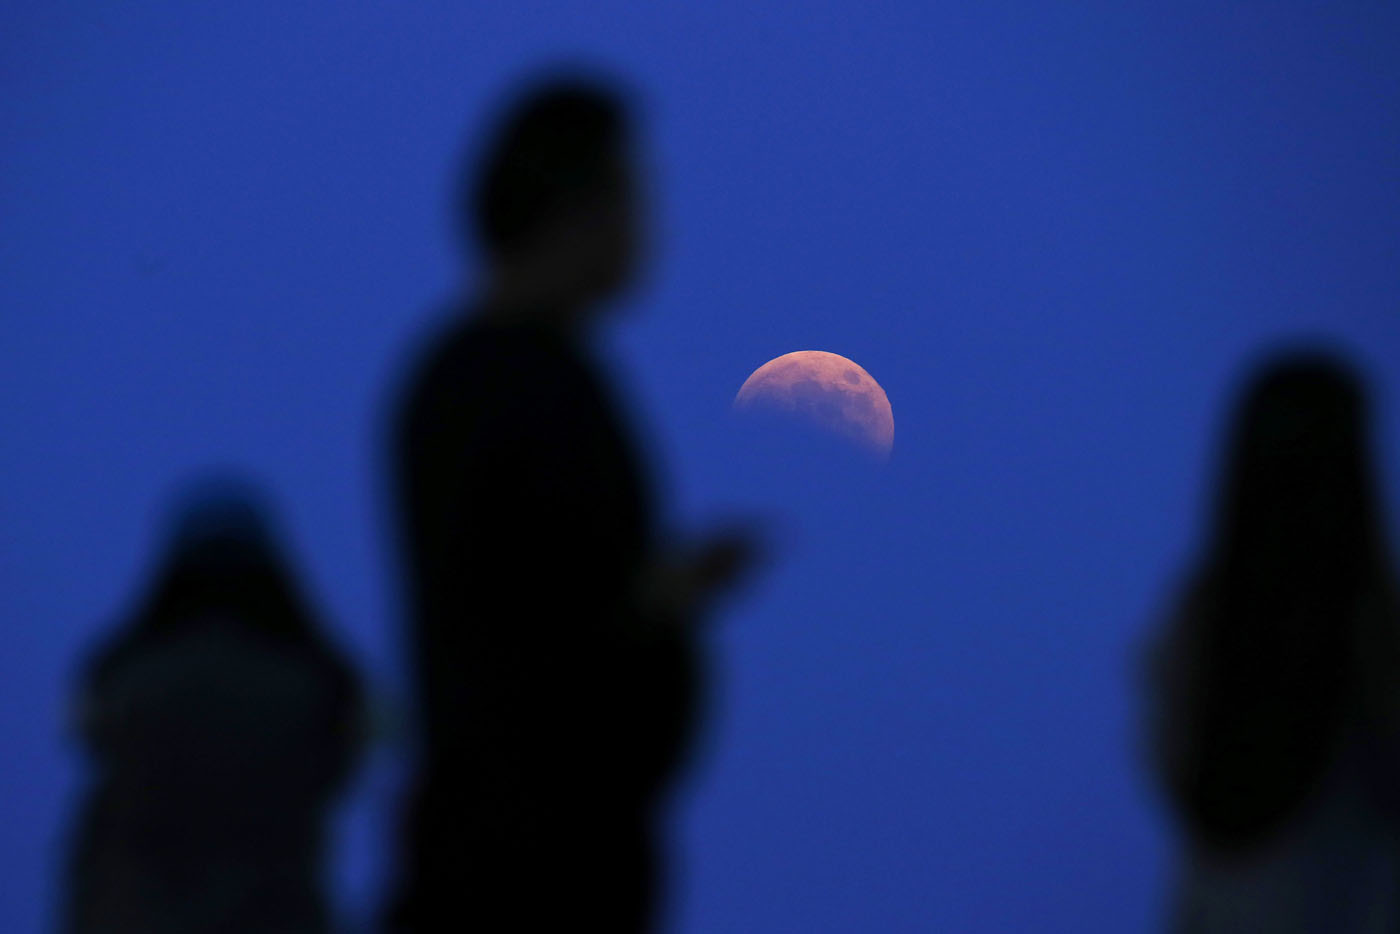 The beginning of a total lunar eclipse is seen from the Qizhong Tennis Court in Shanghai